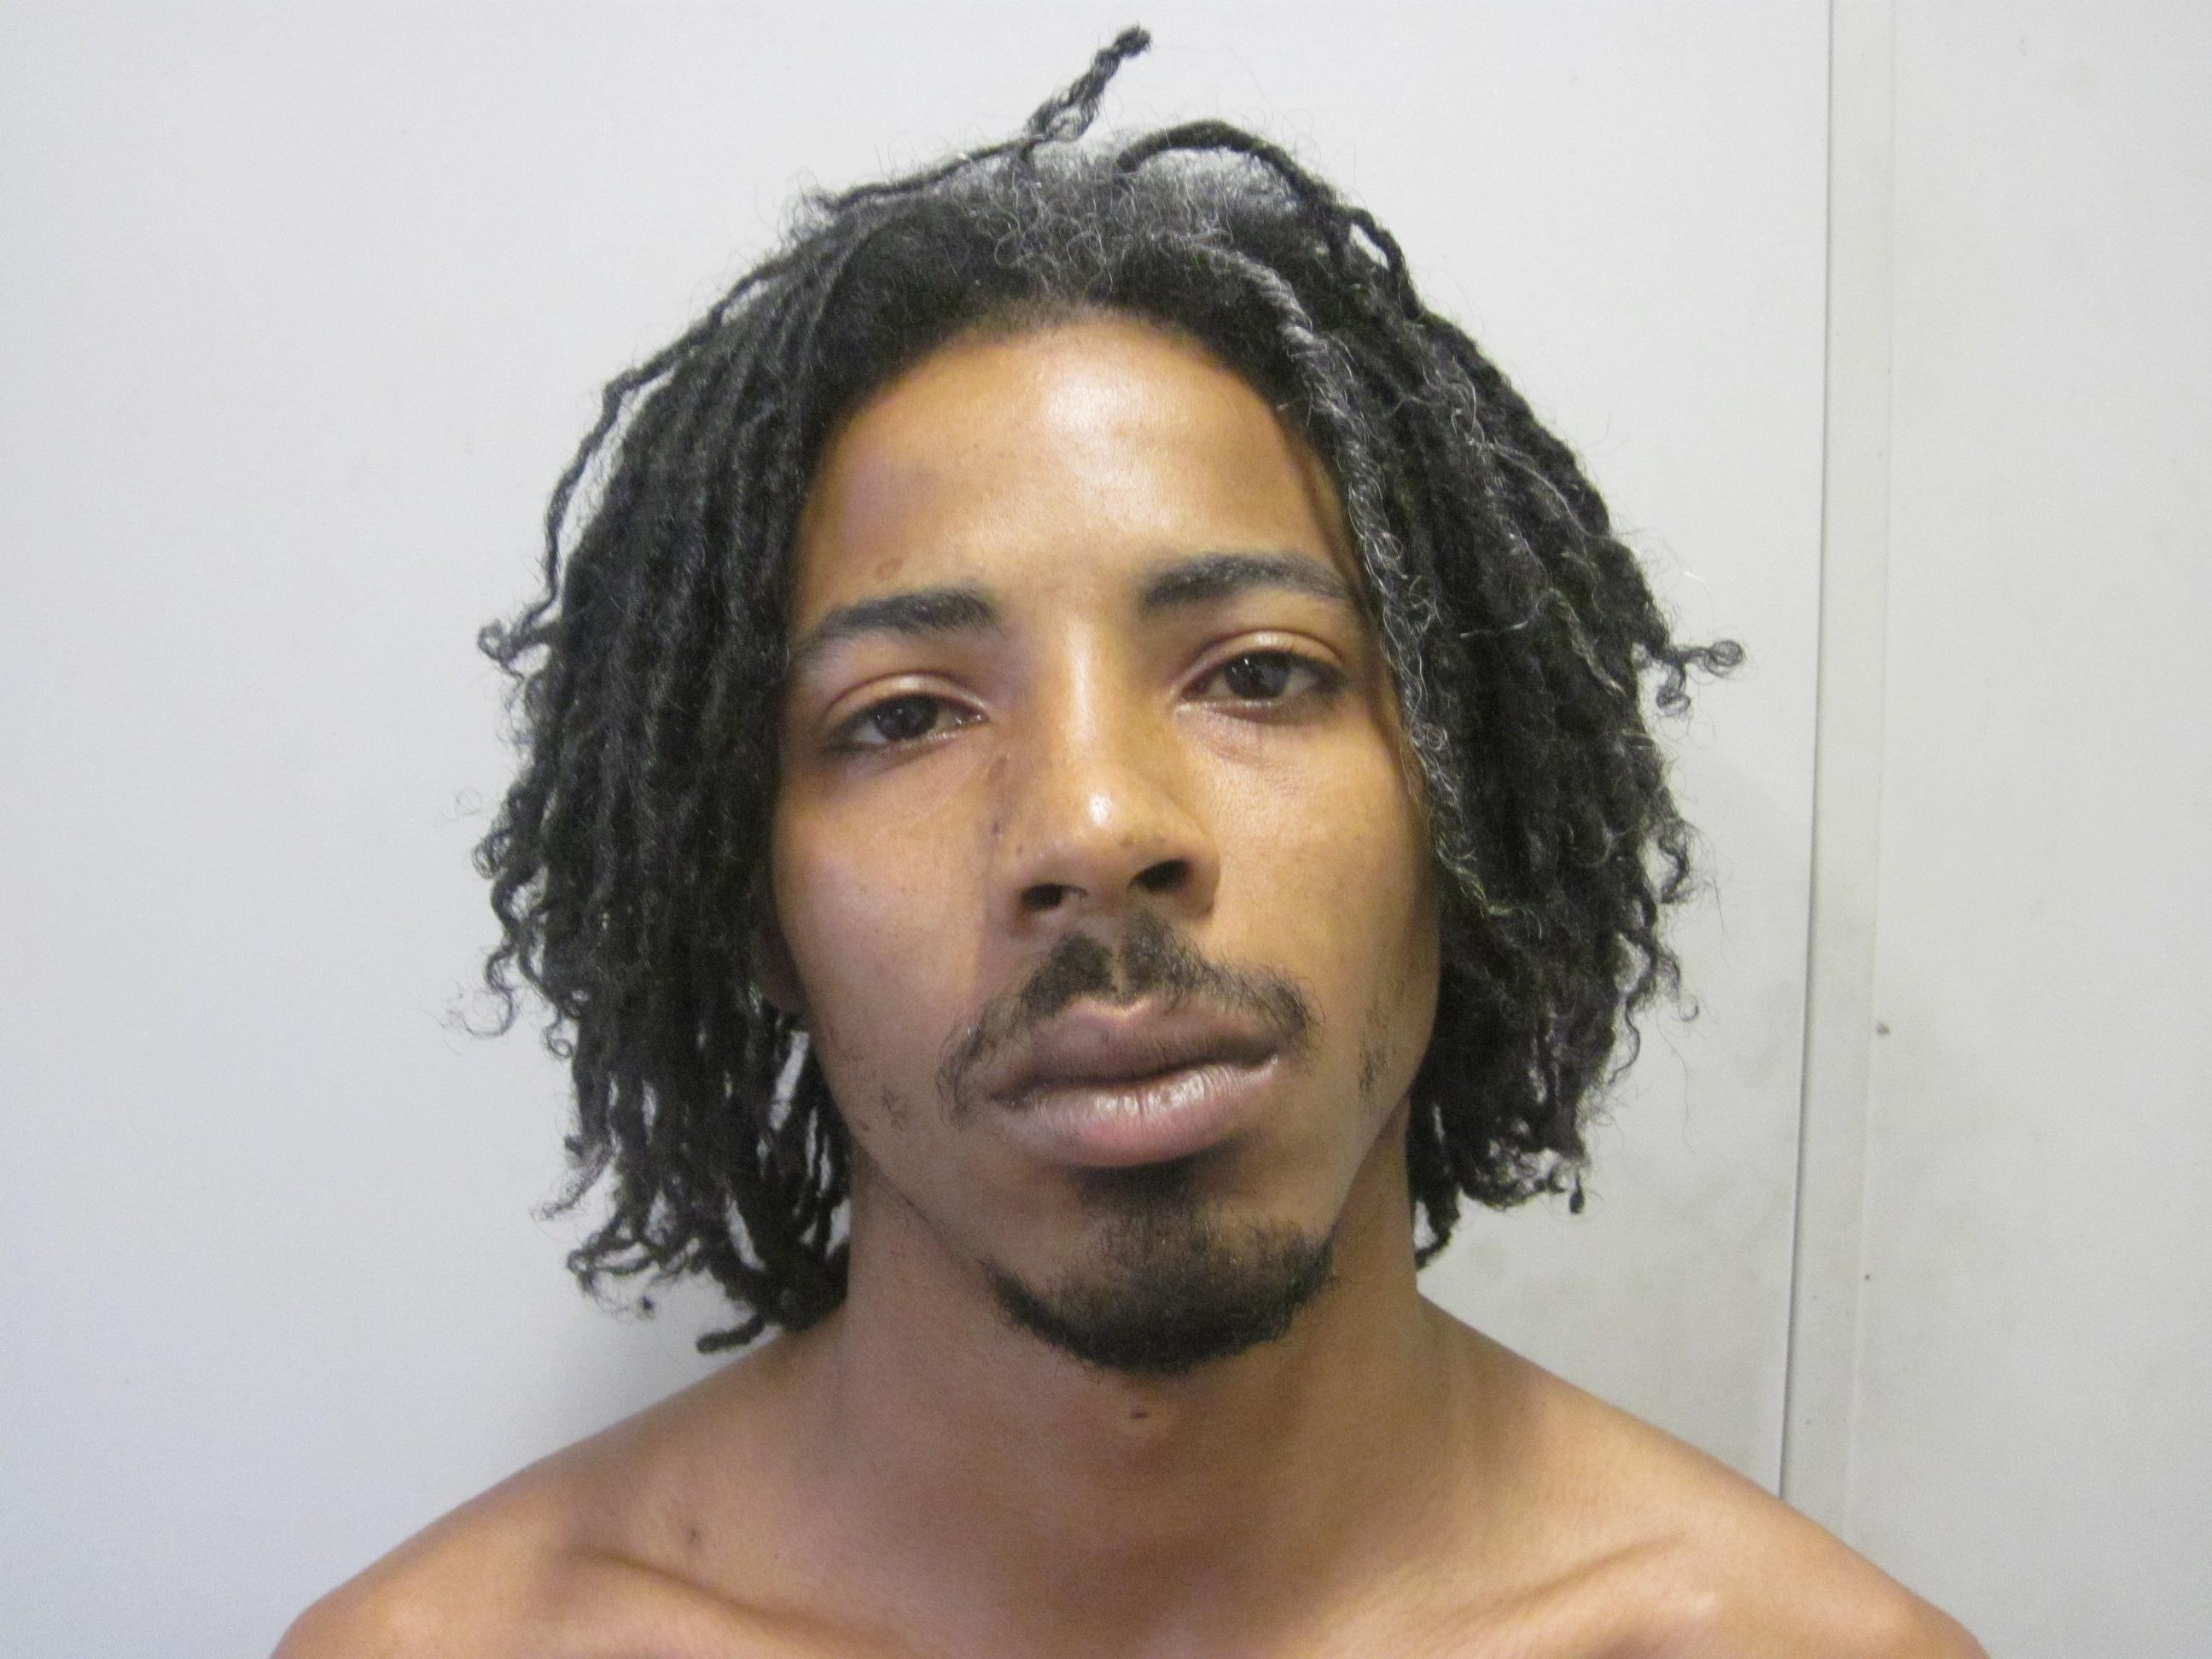 Antonio Clay, 29, of Hannibal